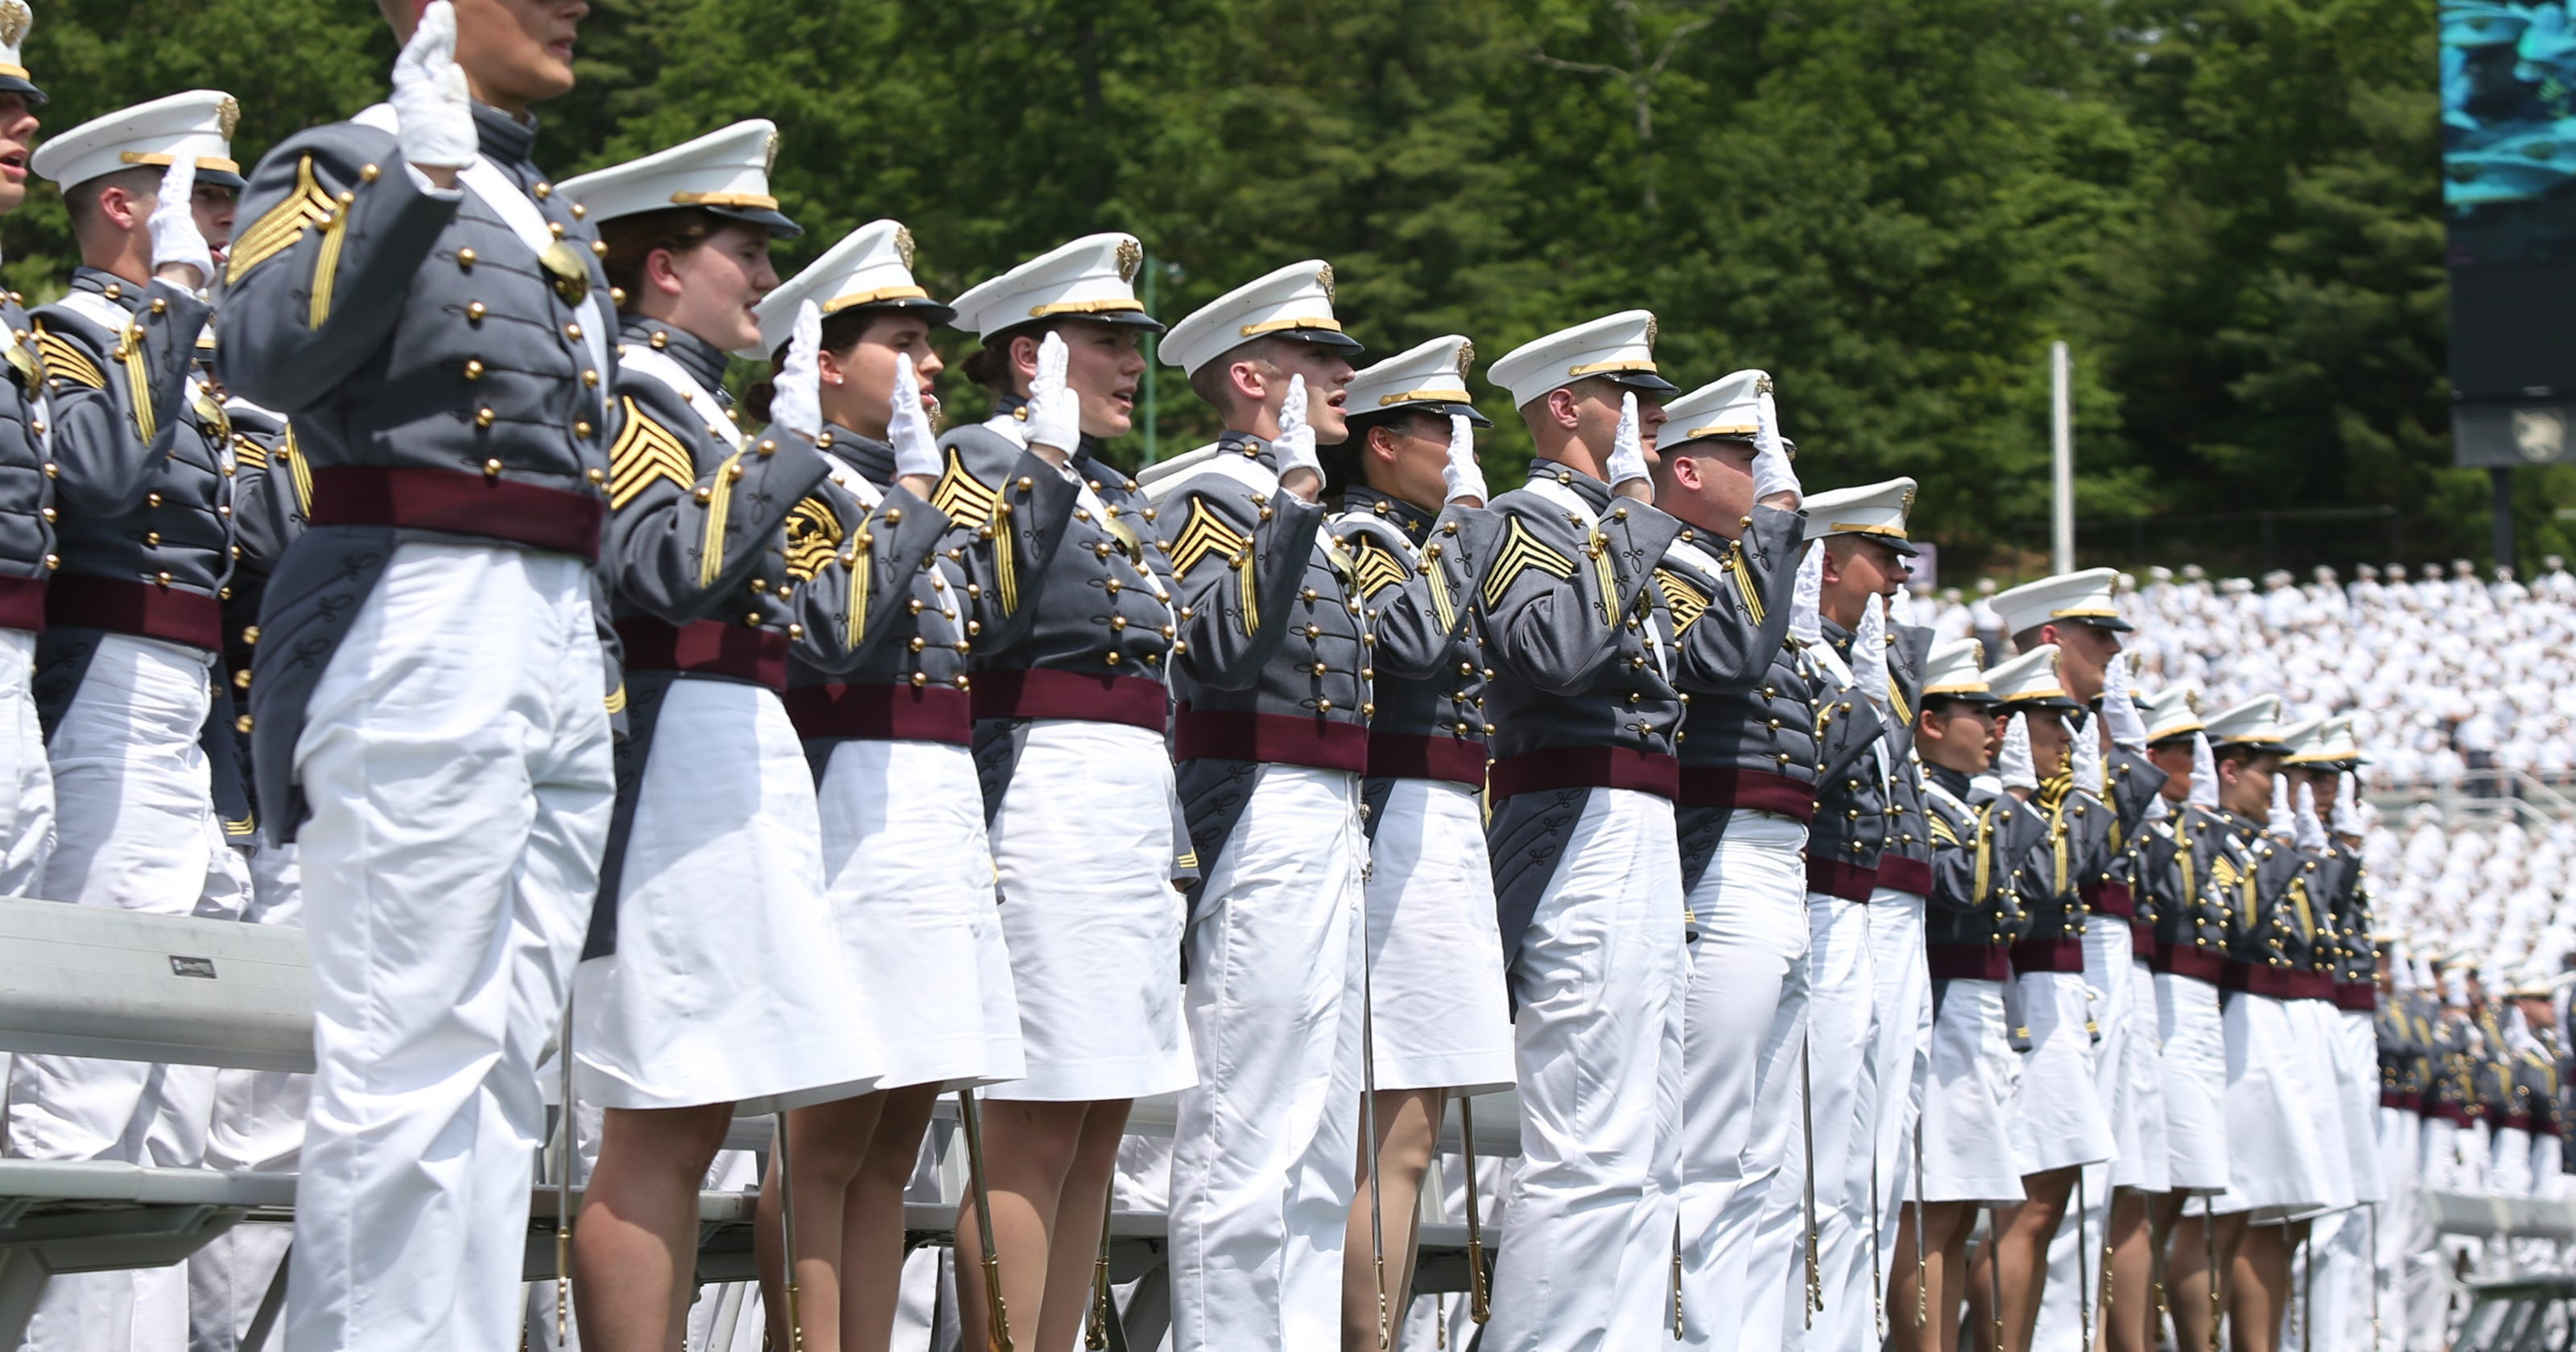 volunteers as a west point cadet for a day